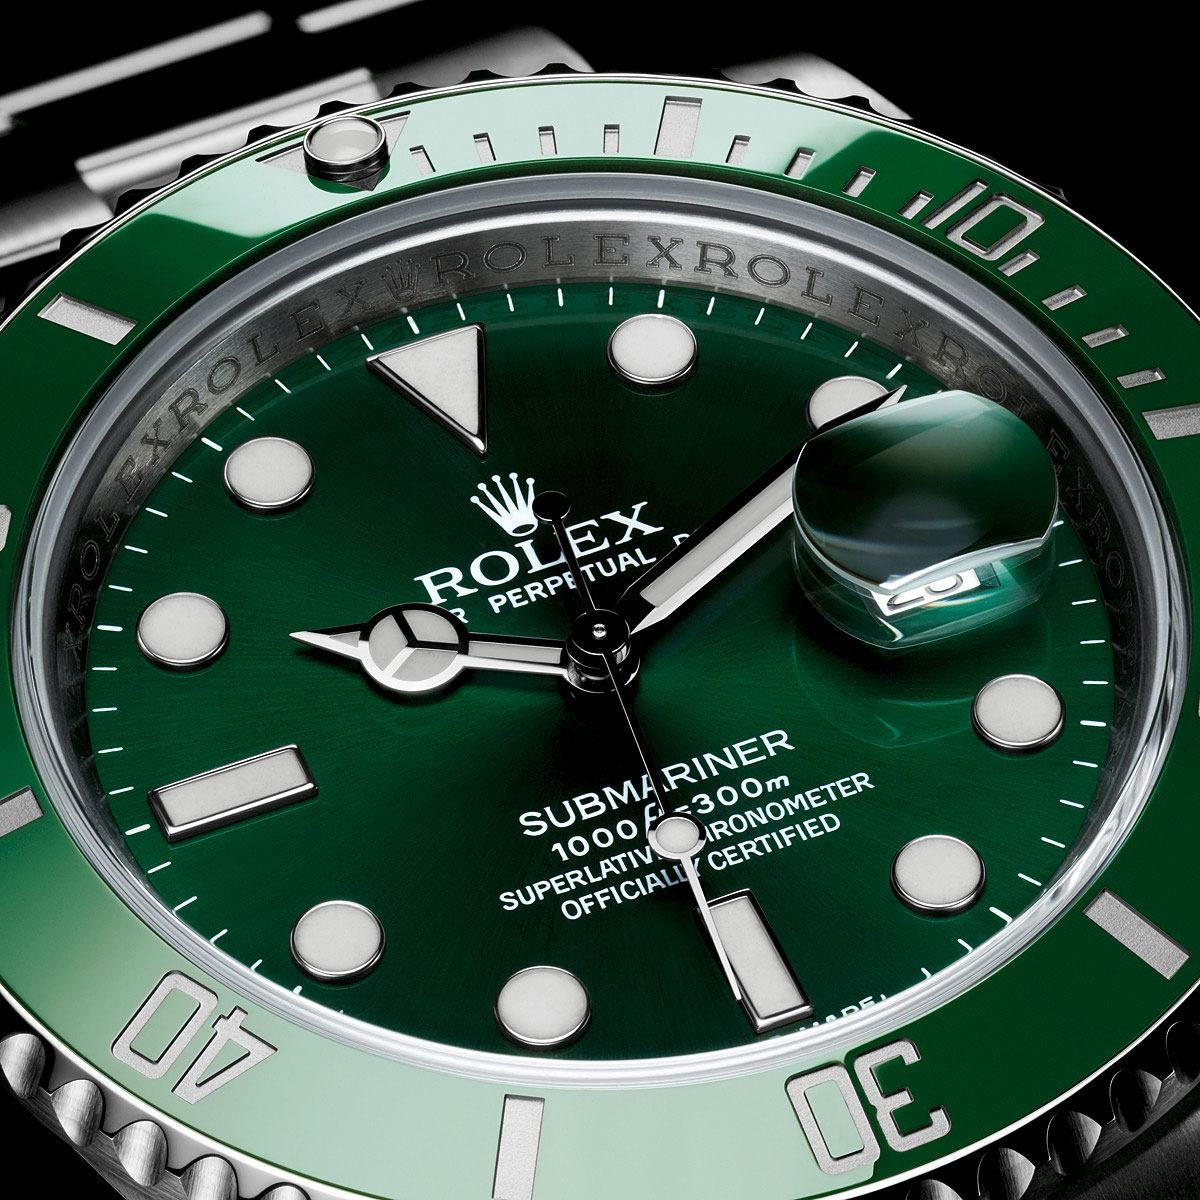 83e24a04ce5 ROLEX SUBMARINER IN GREEN (ref 116610LV) Nicknamed the